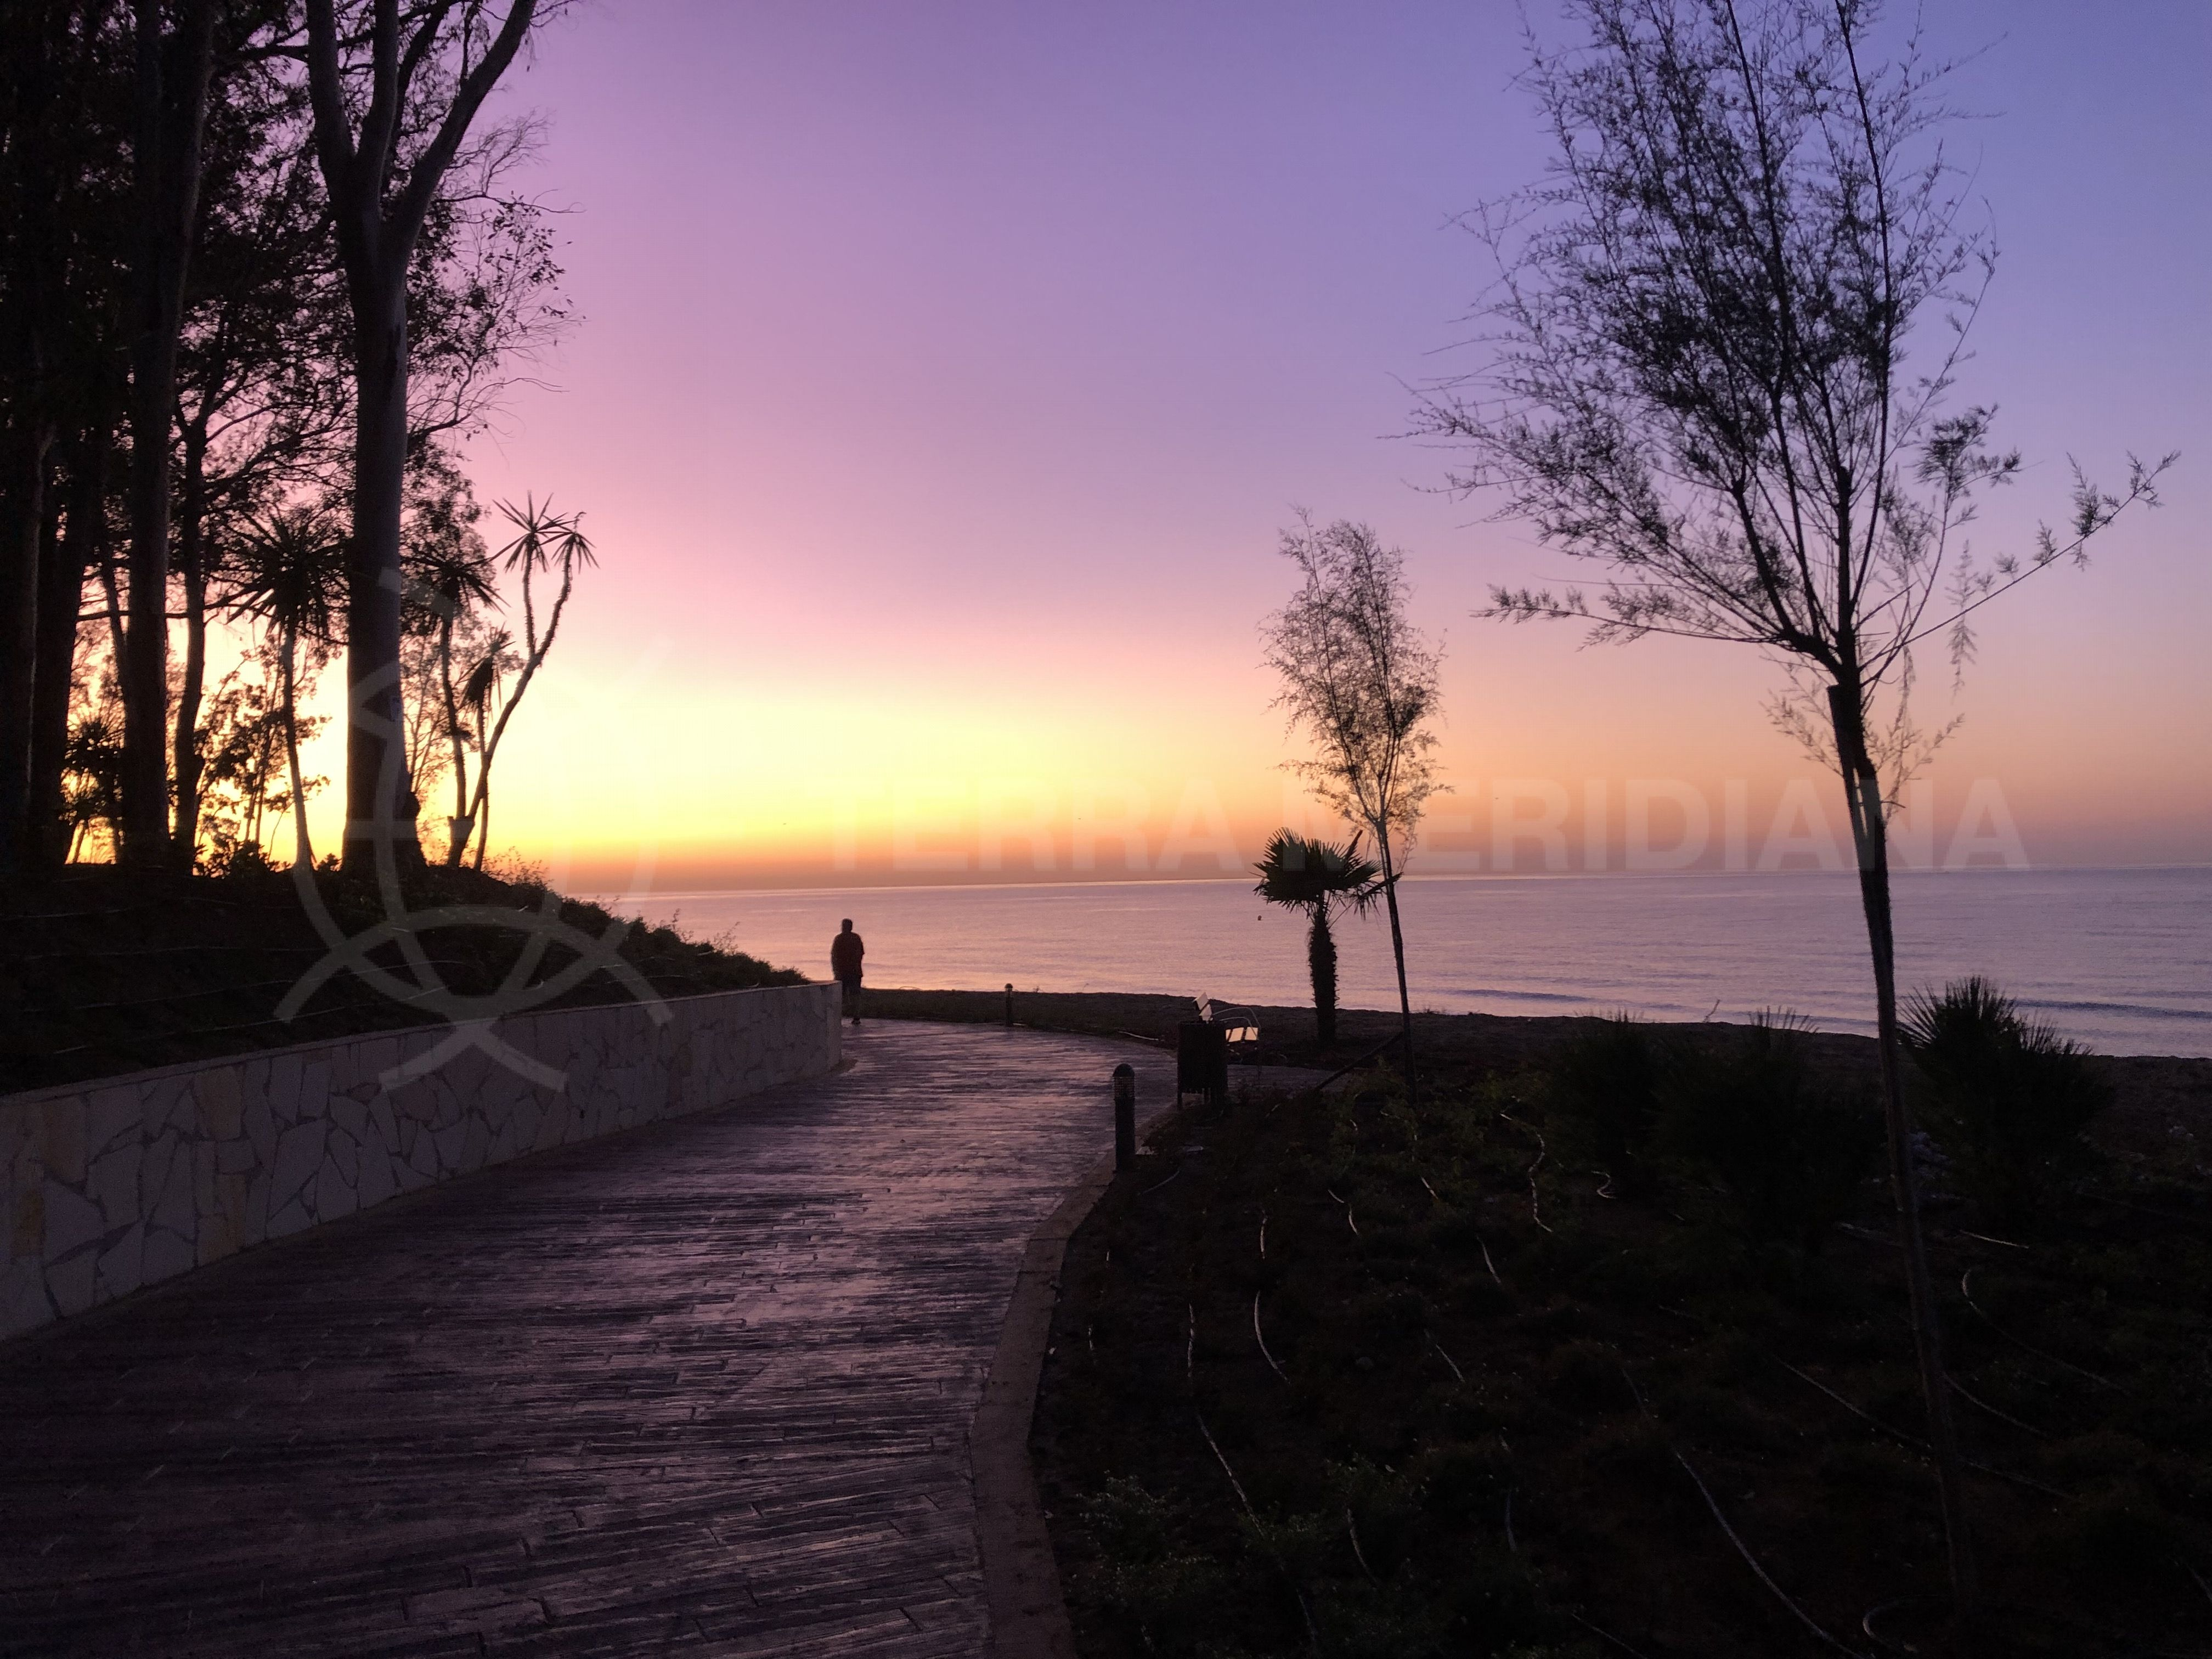 New section of coastal path opens in Estepona